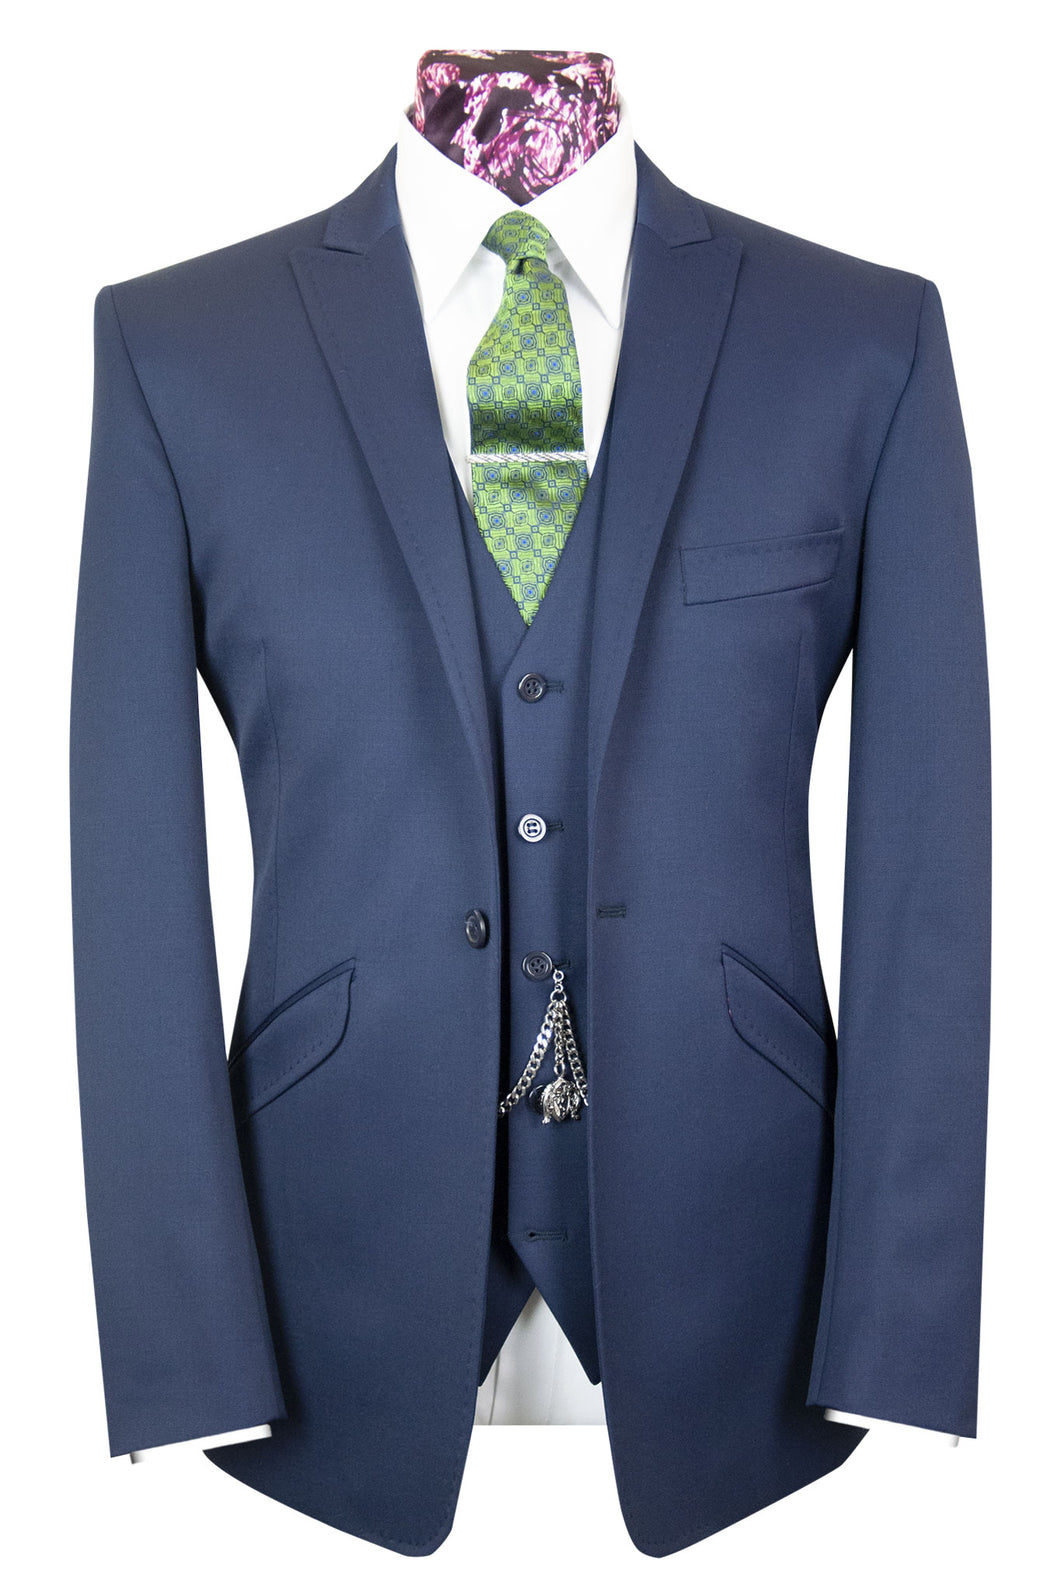 The Langmore Classic Navy Suit